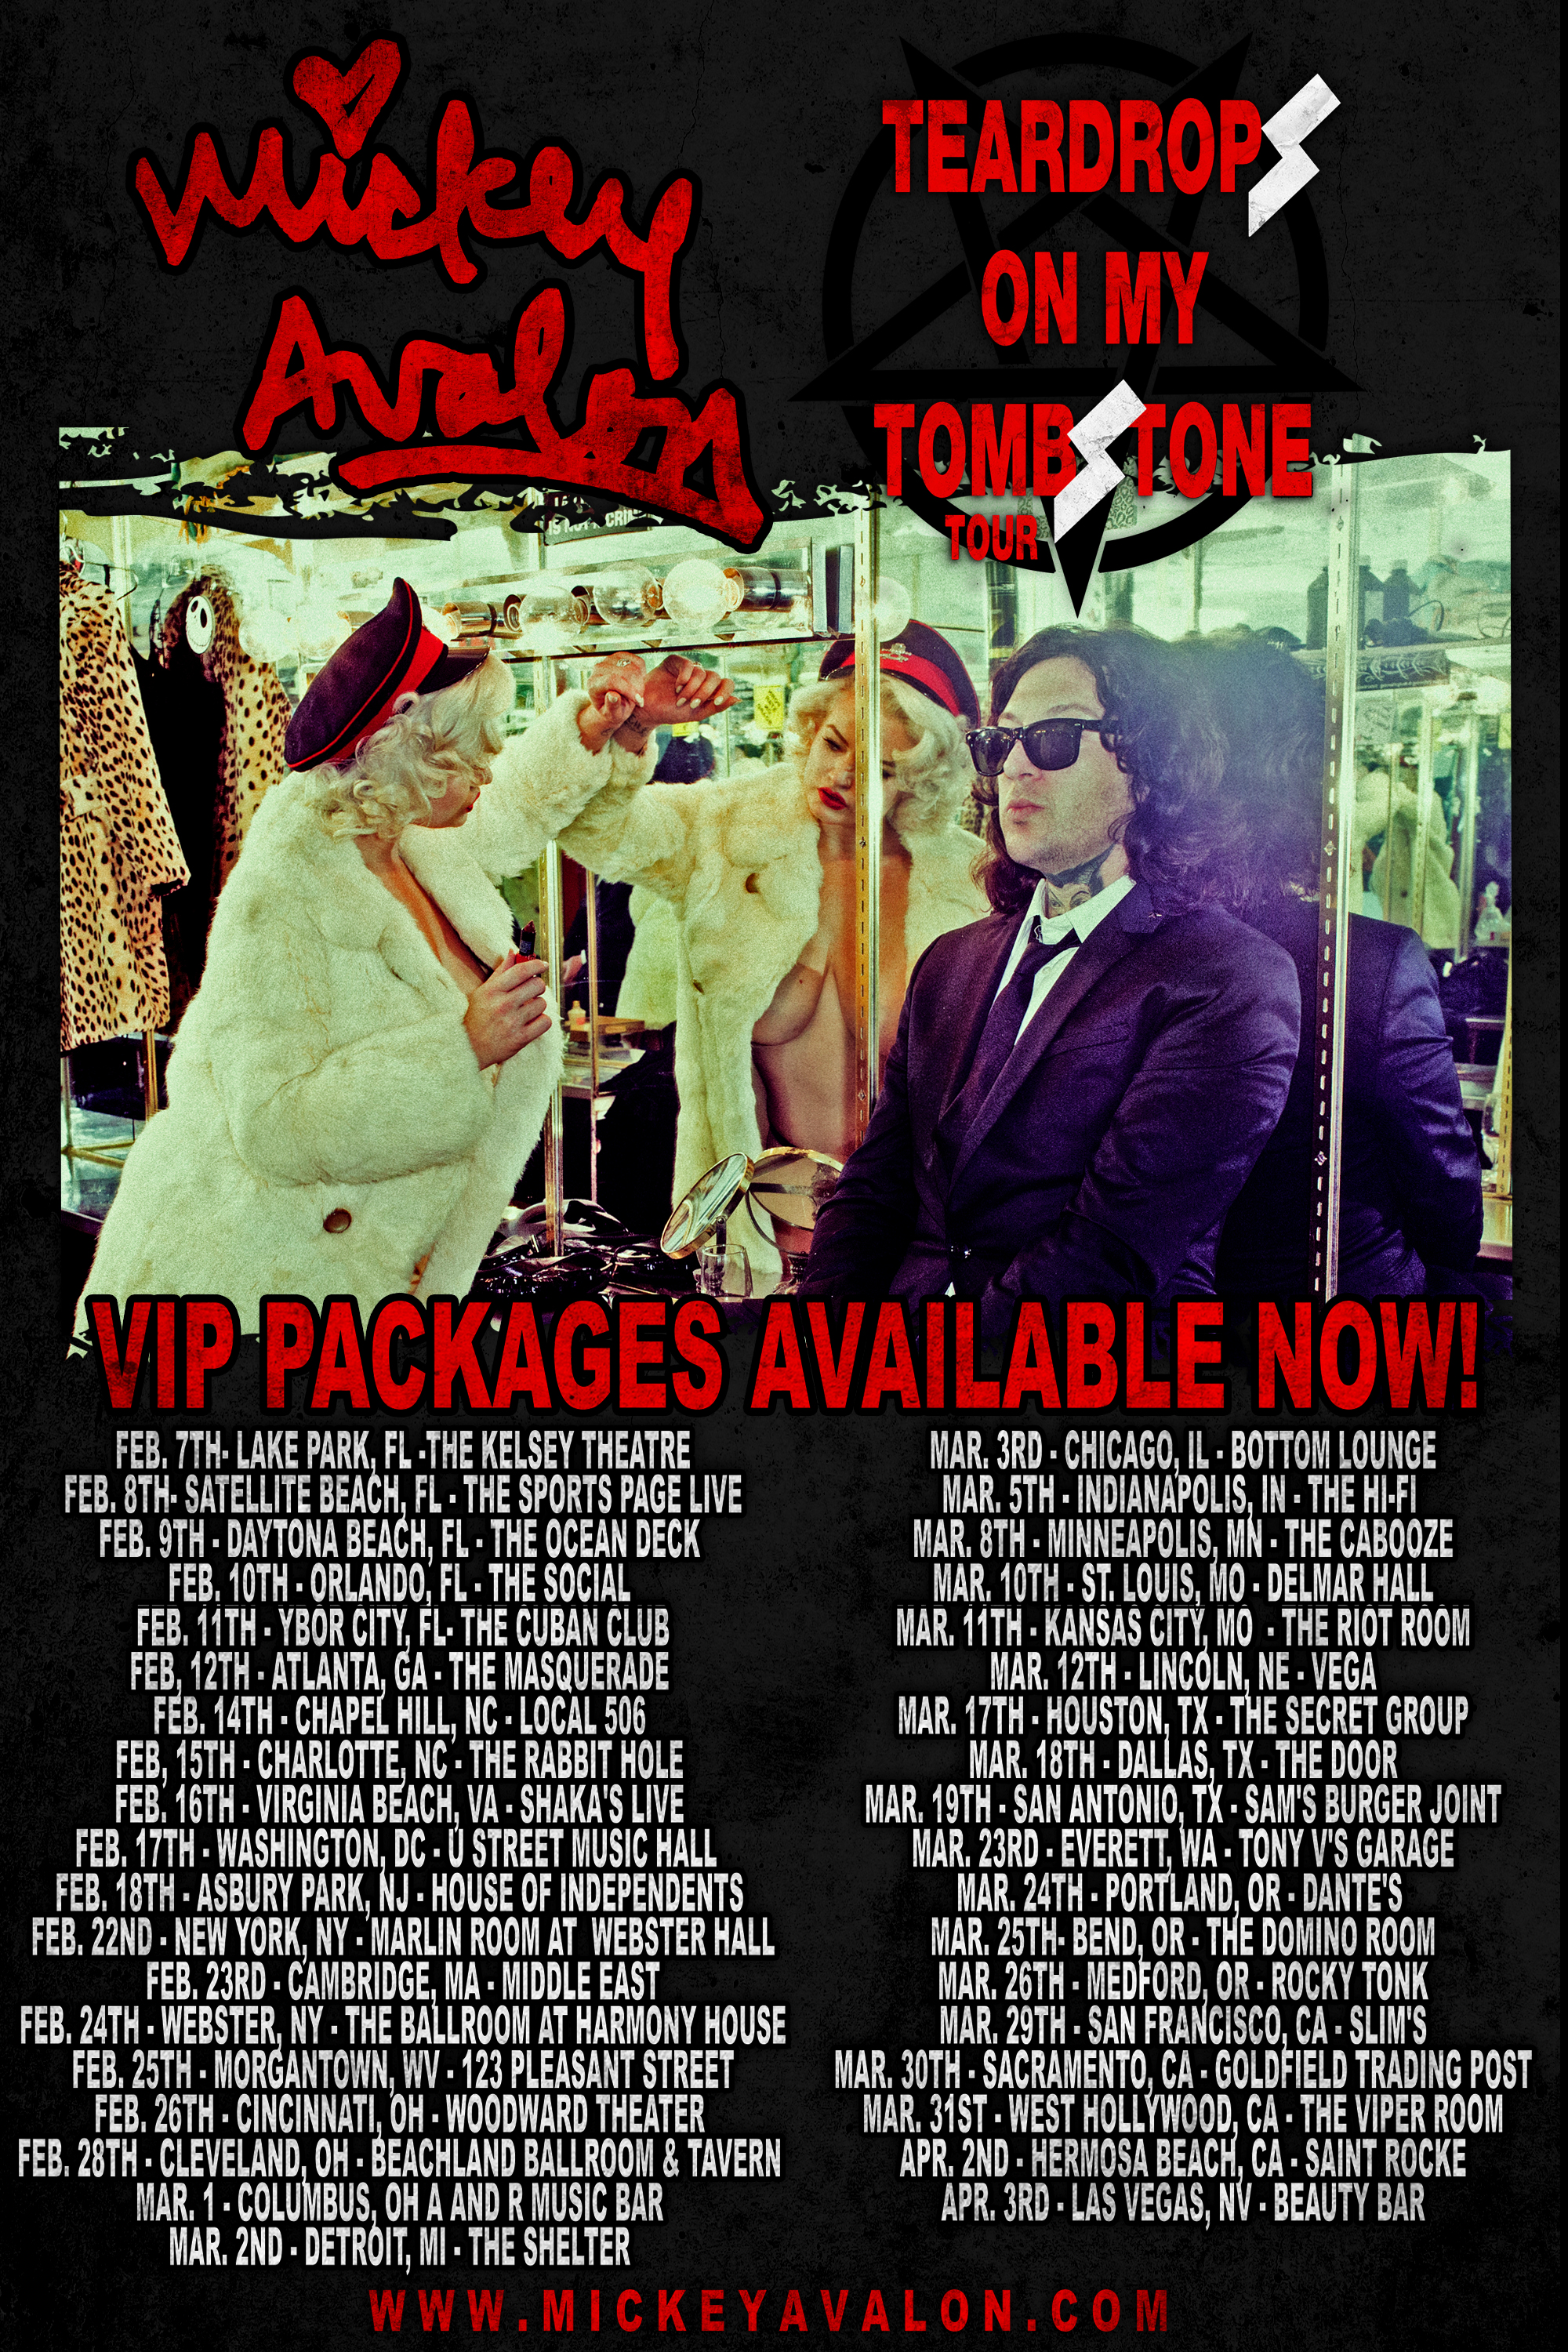 Head over to the store to check out the VIP packages for the Teardrops On My Tombstone Tour!!